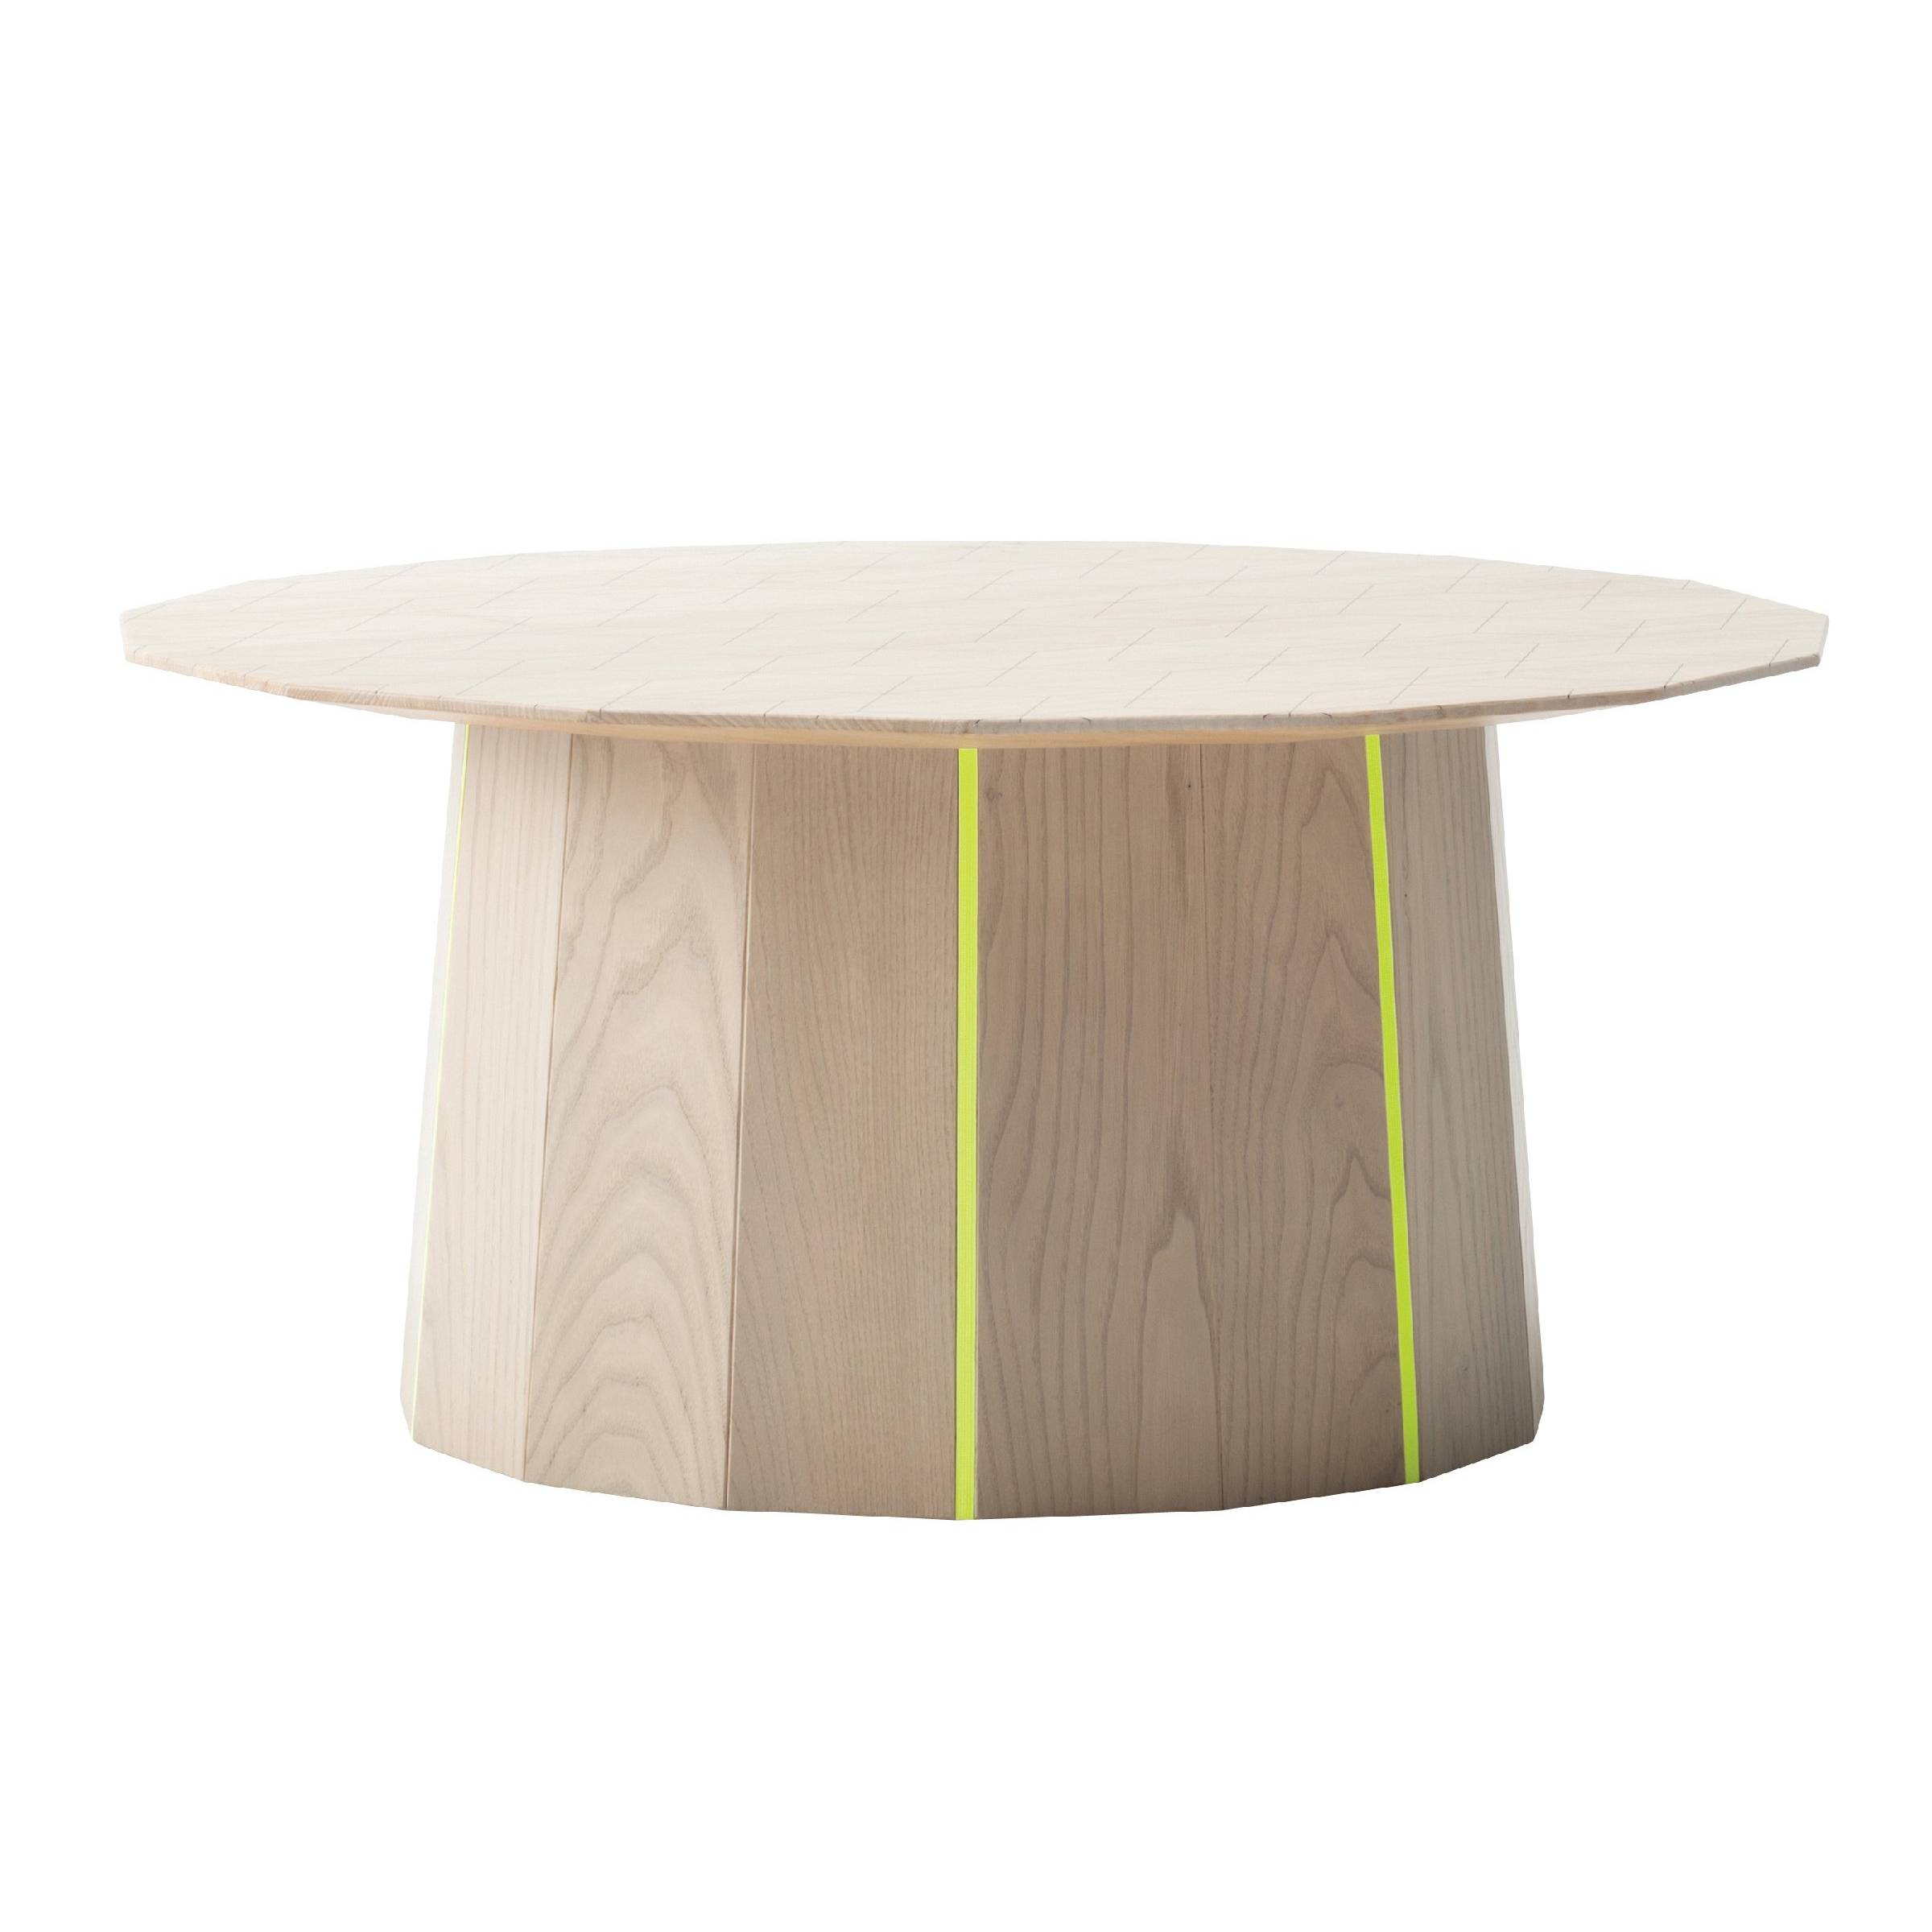 Colour Wood Tables: 700mm + Plain Grid Top